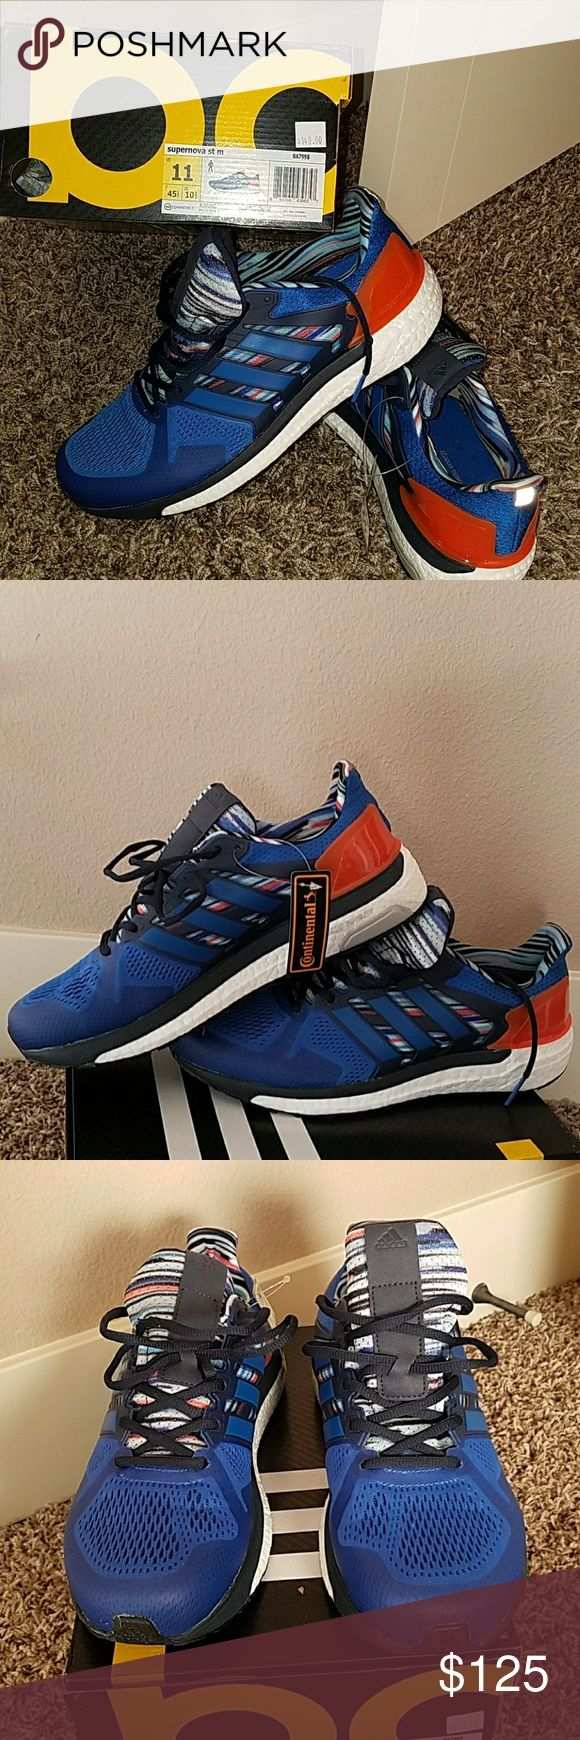 Adidas supernova boost Blue/Orange sneakers, Adidas performance shoe adidas Shoes Athletic Shoes